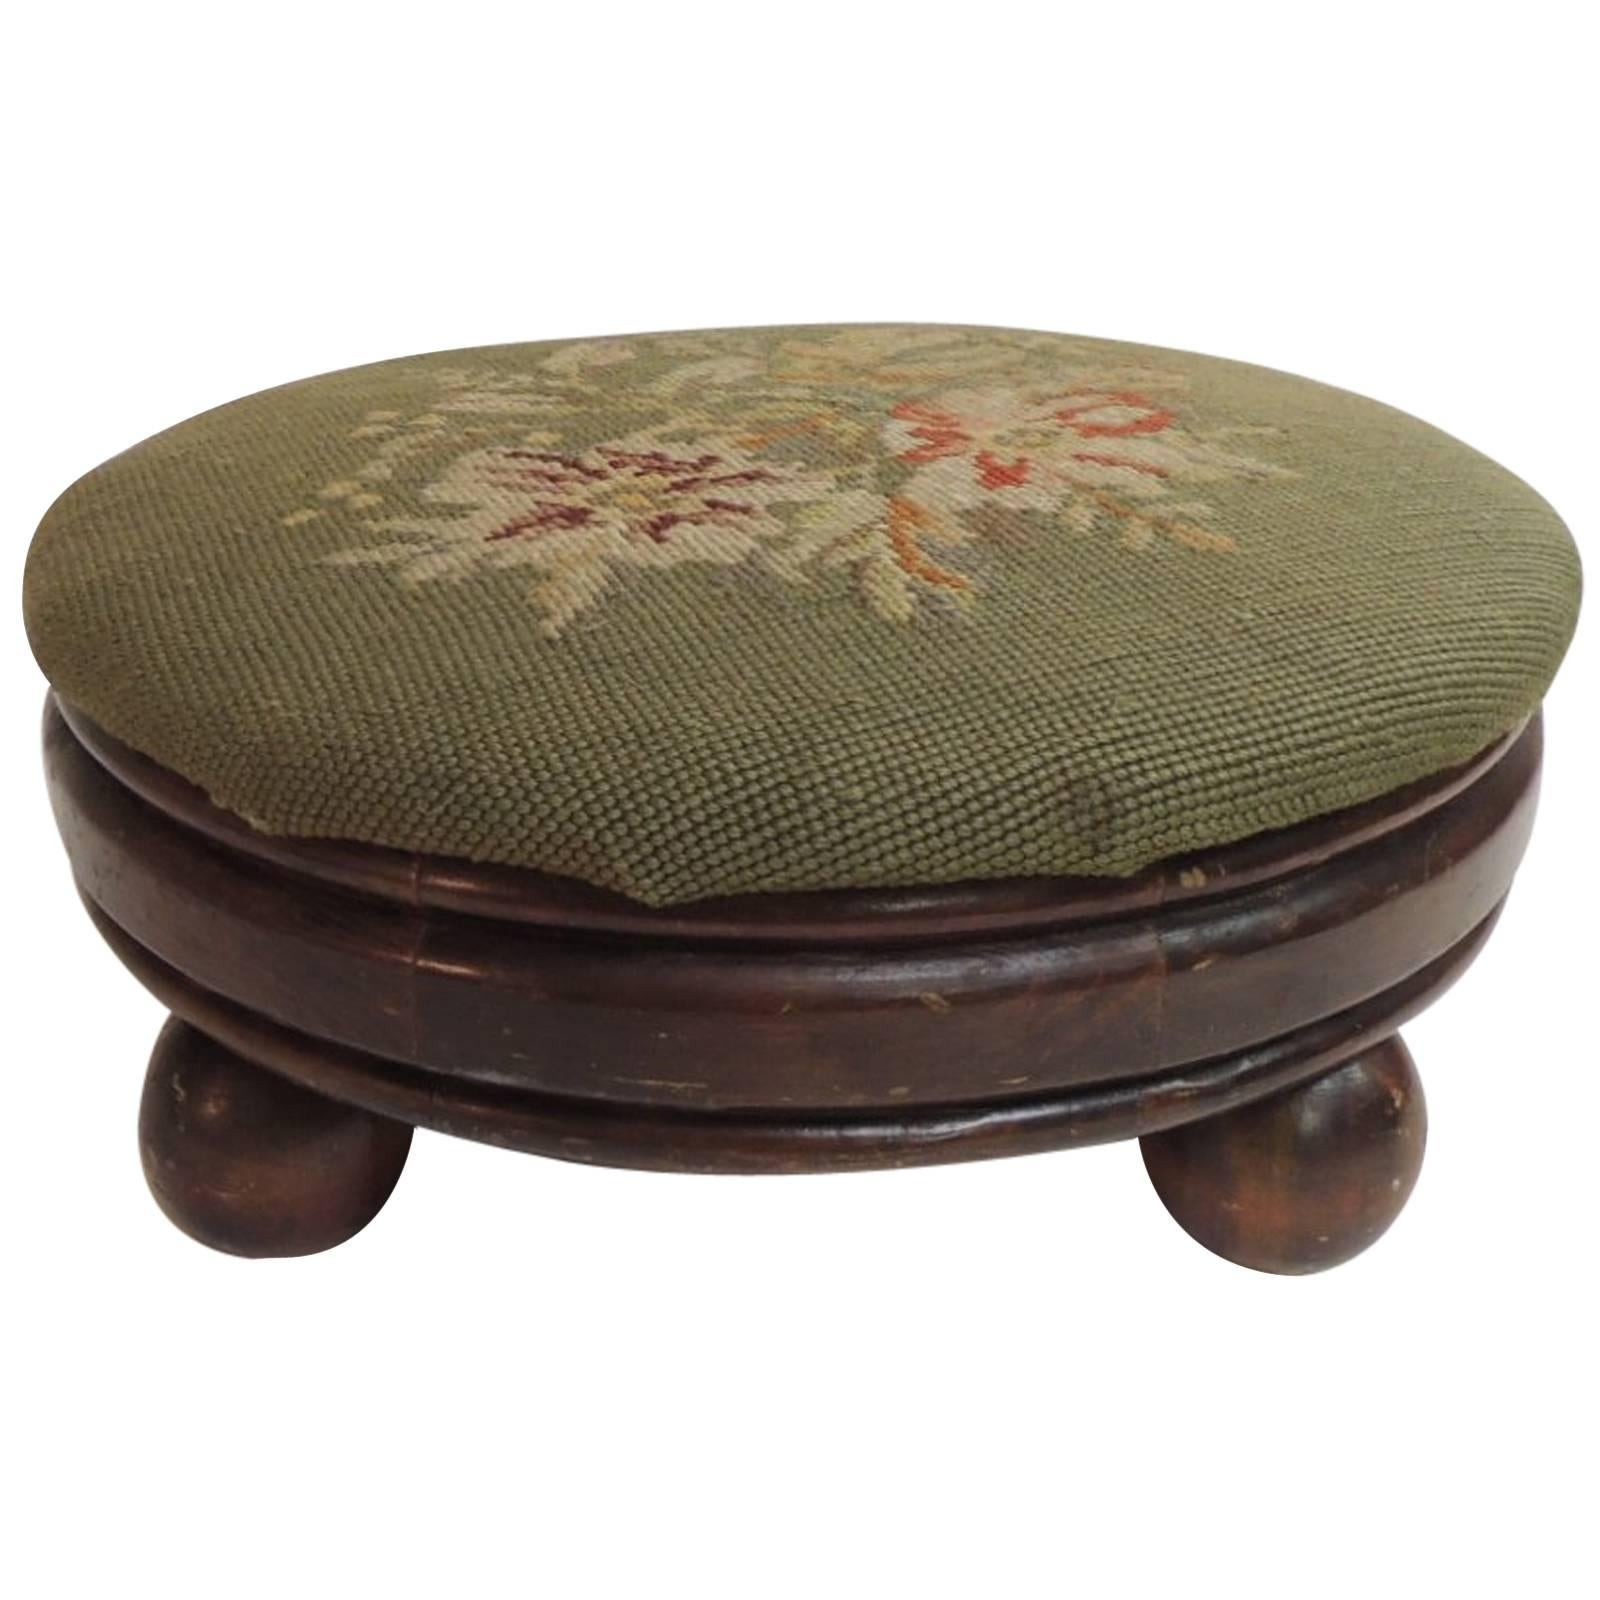 Victorian Upholstered Foot Stool On Bun Feet High Quality And Inexpensive Furniture